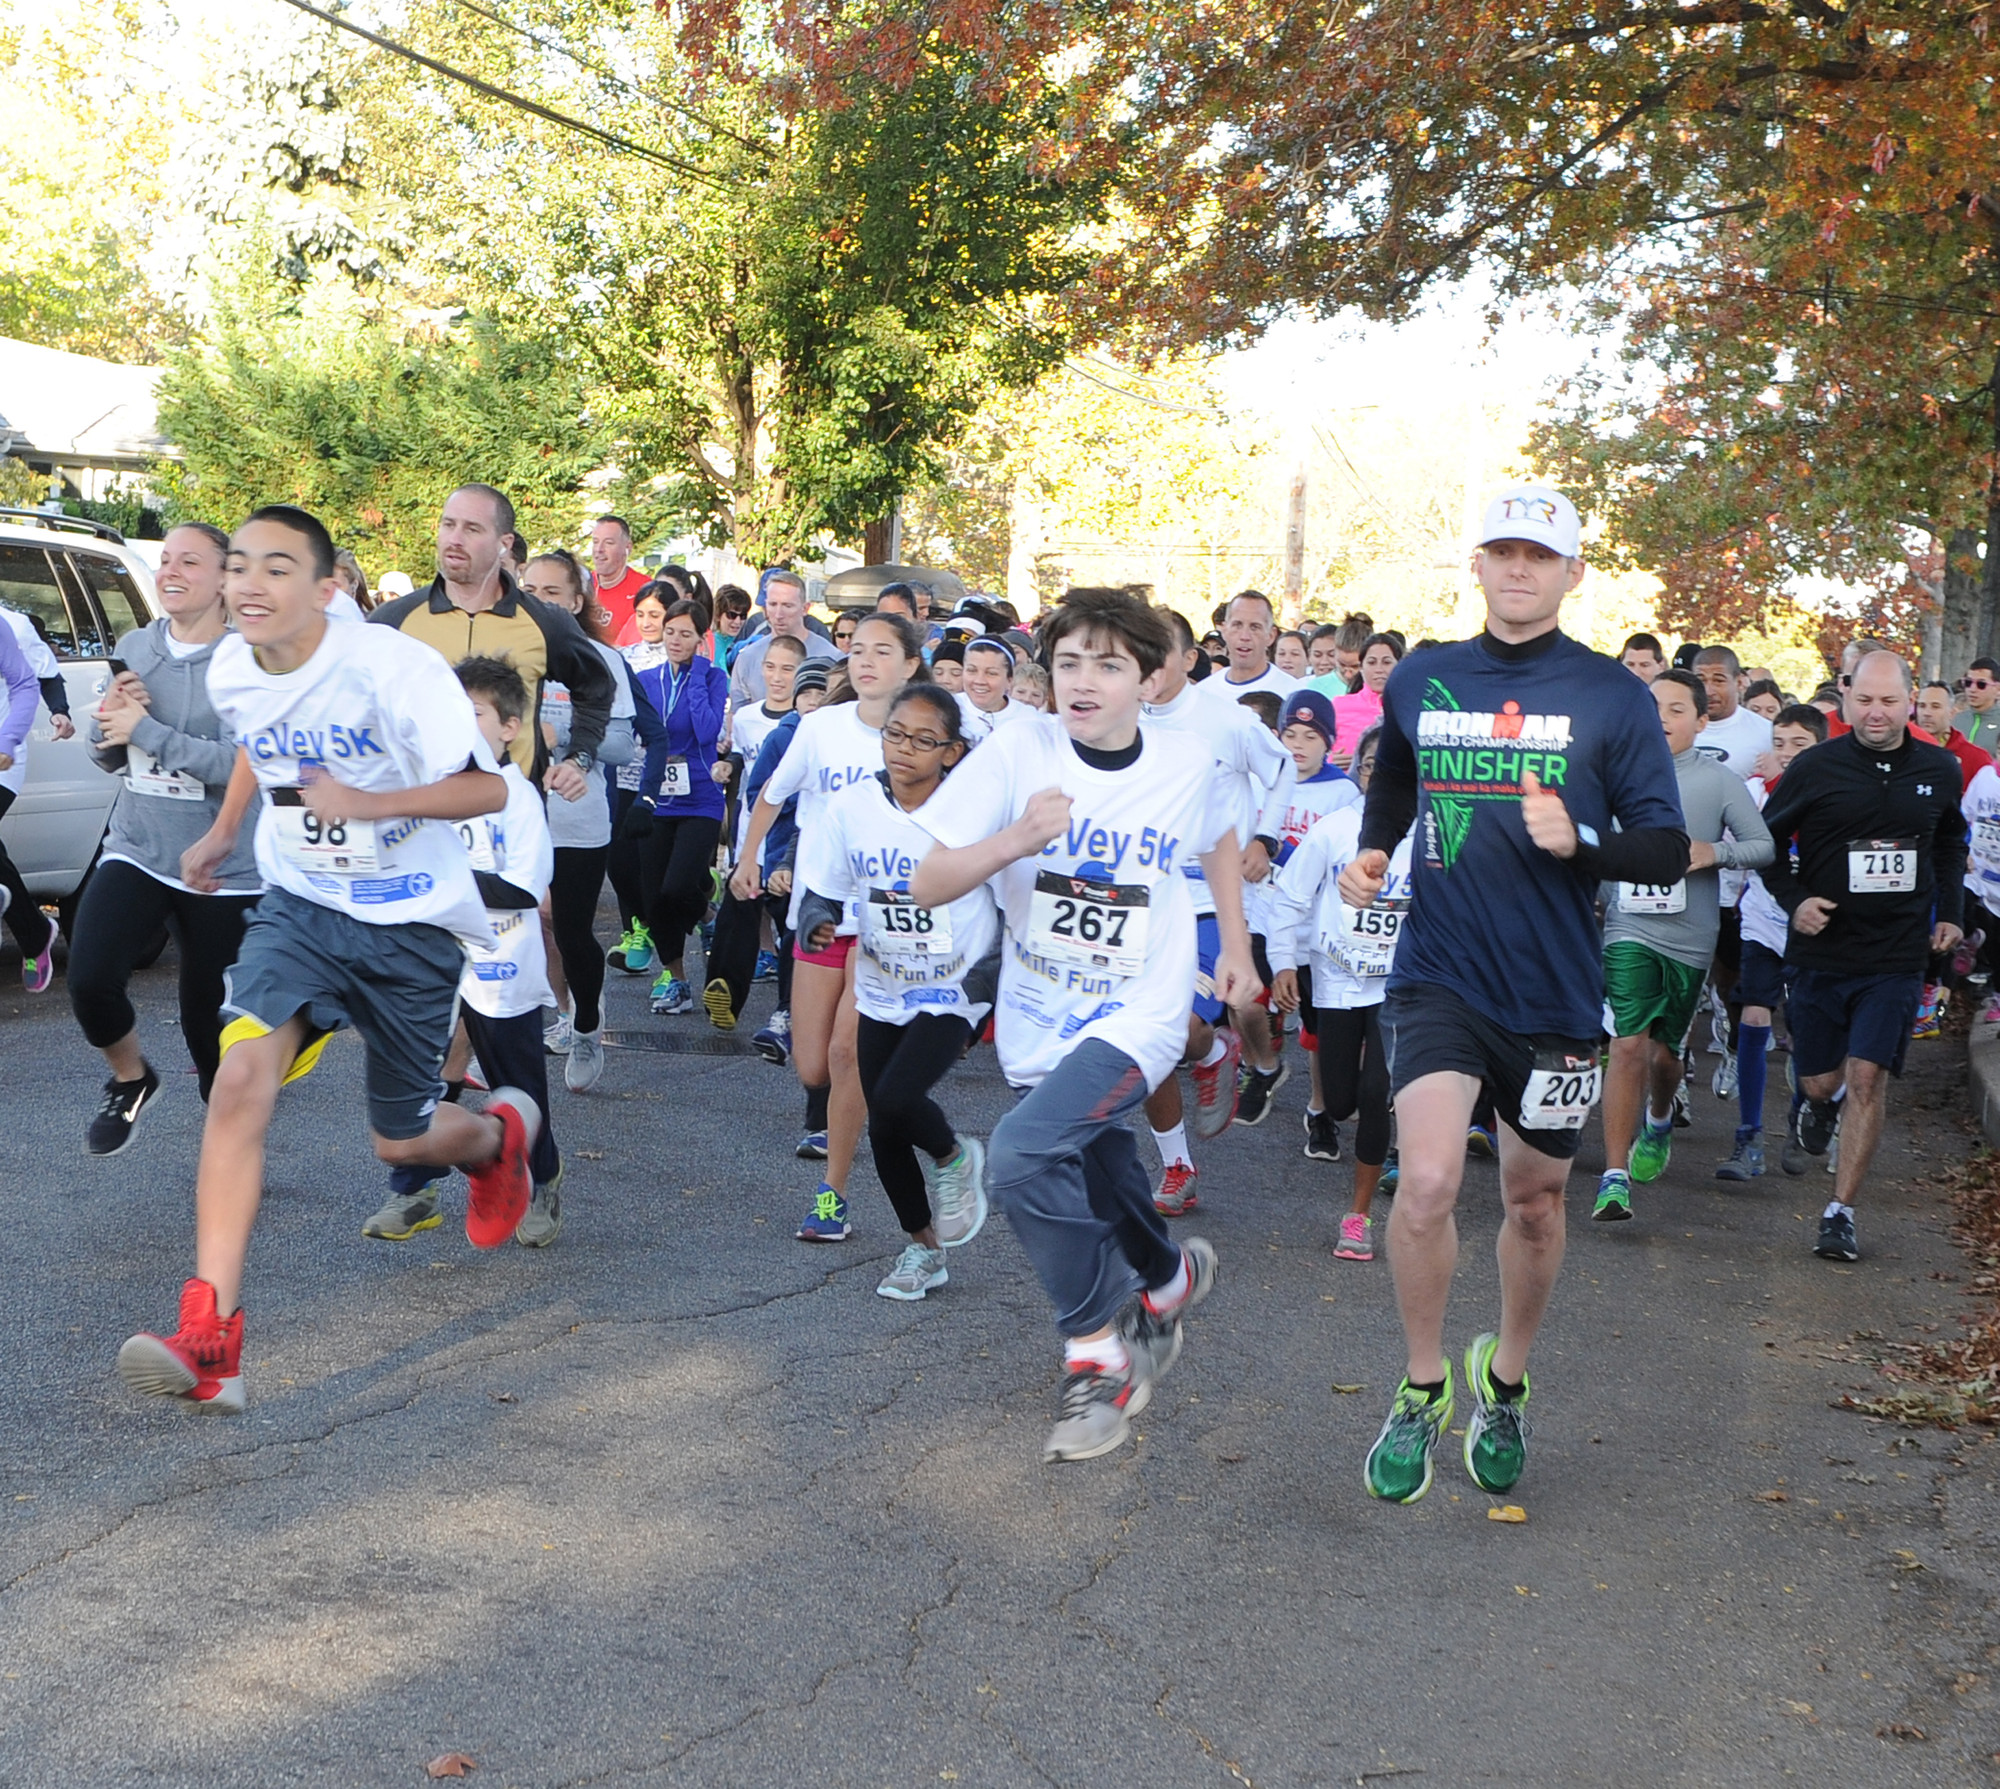 The McVey Elementary School inaugural 5K race and 1-mile fun run hit East Meadow Streets last Sunday, with nearly 400 runners competing in the two races.